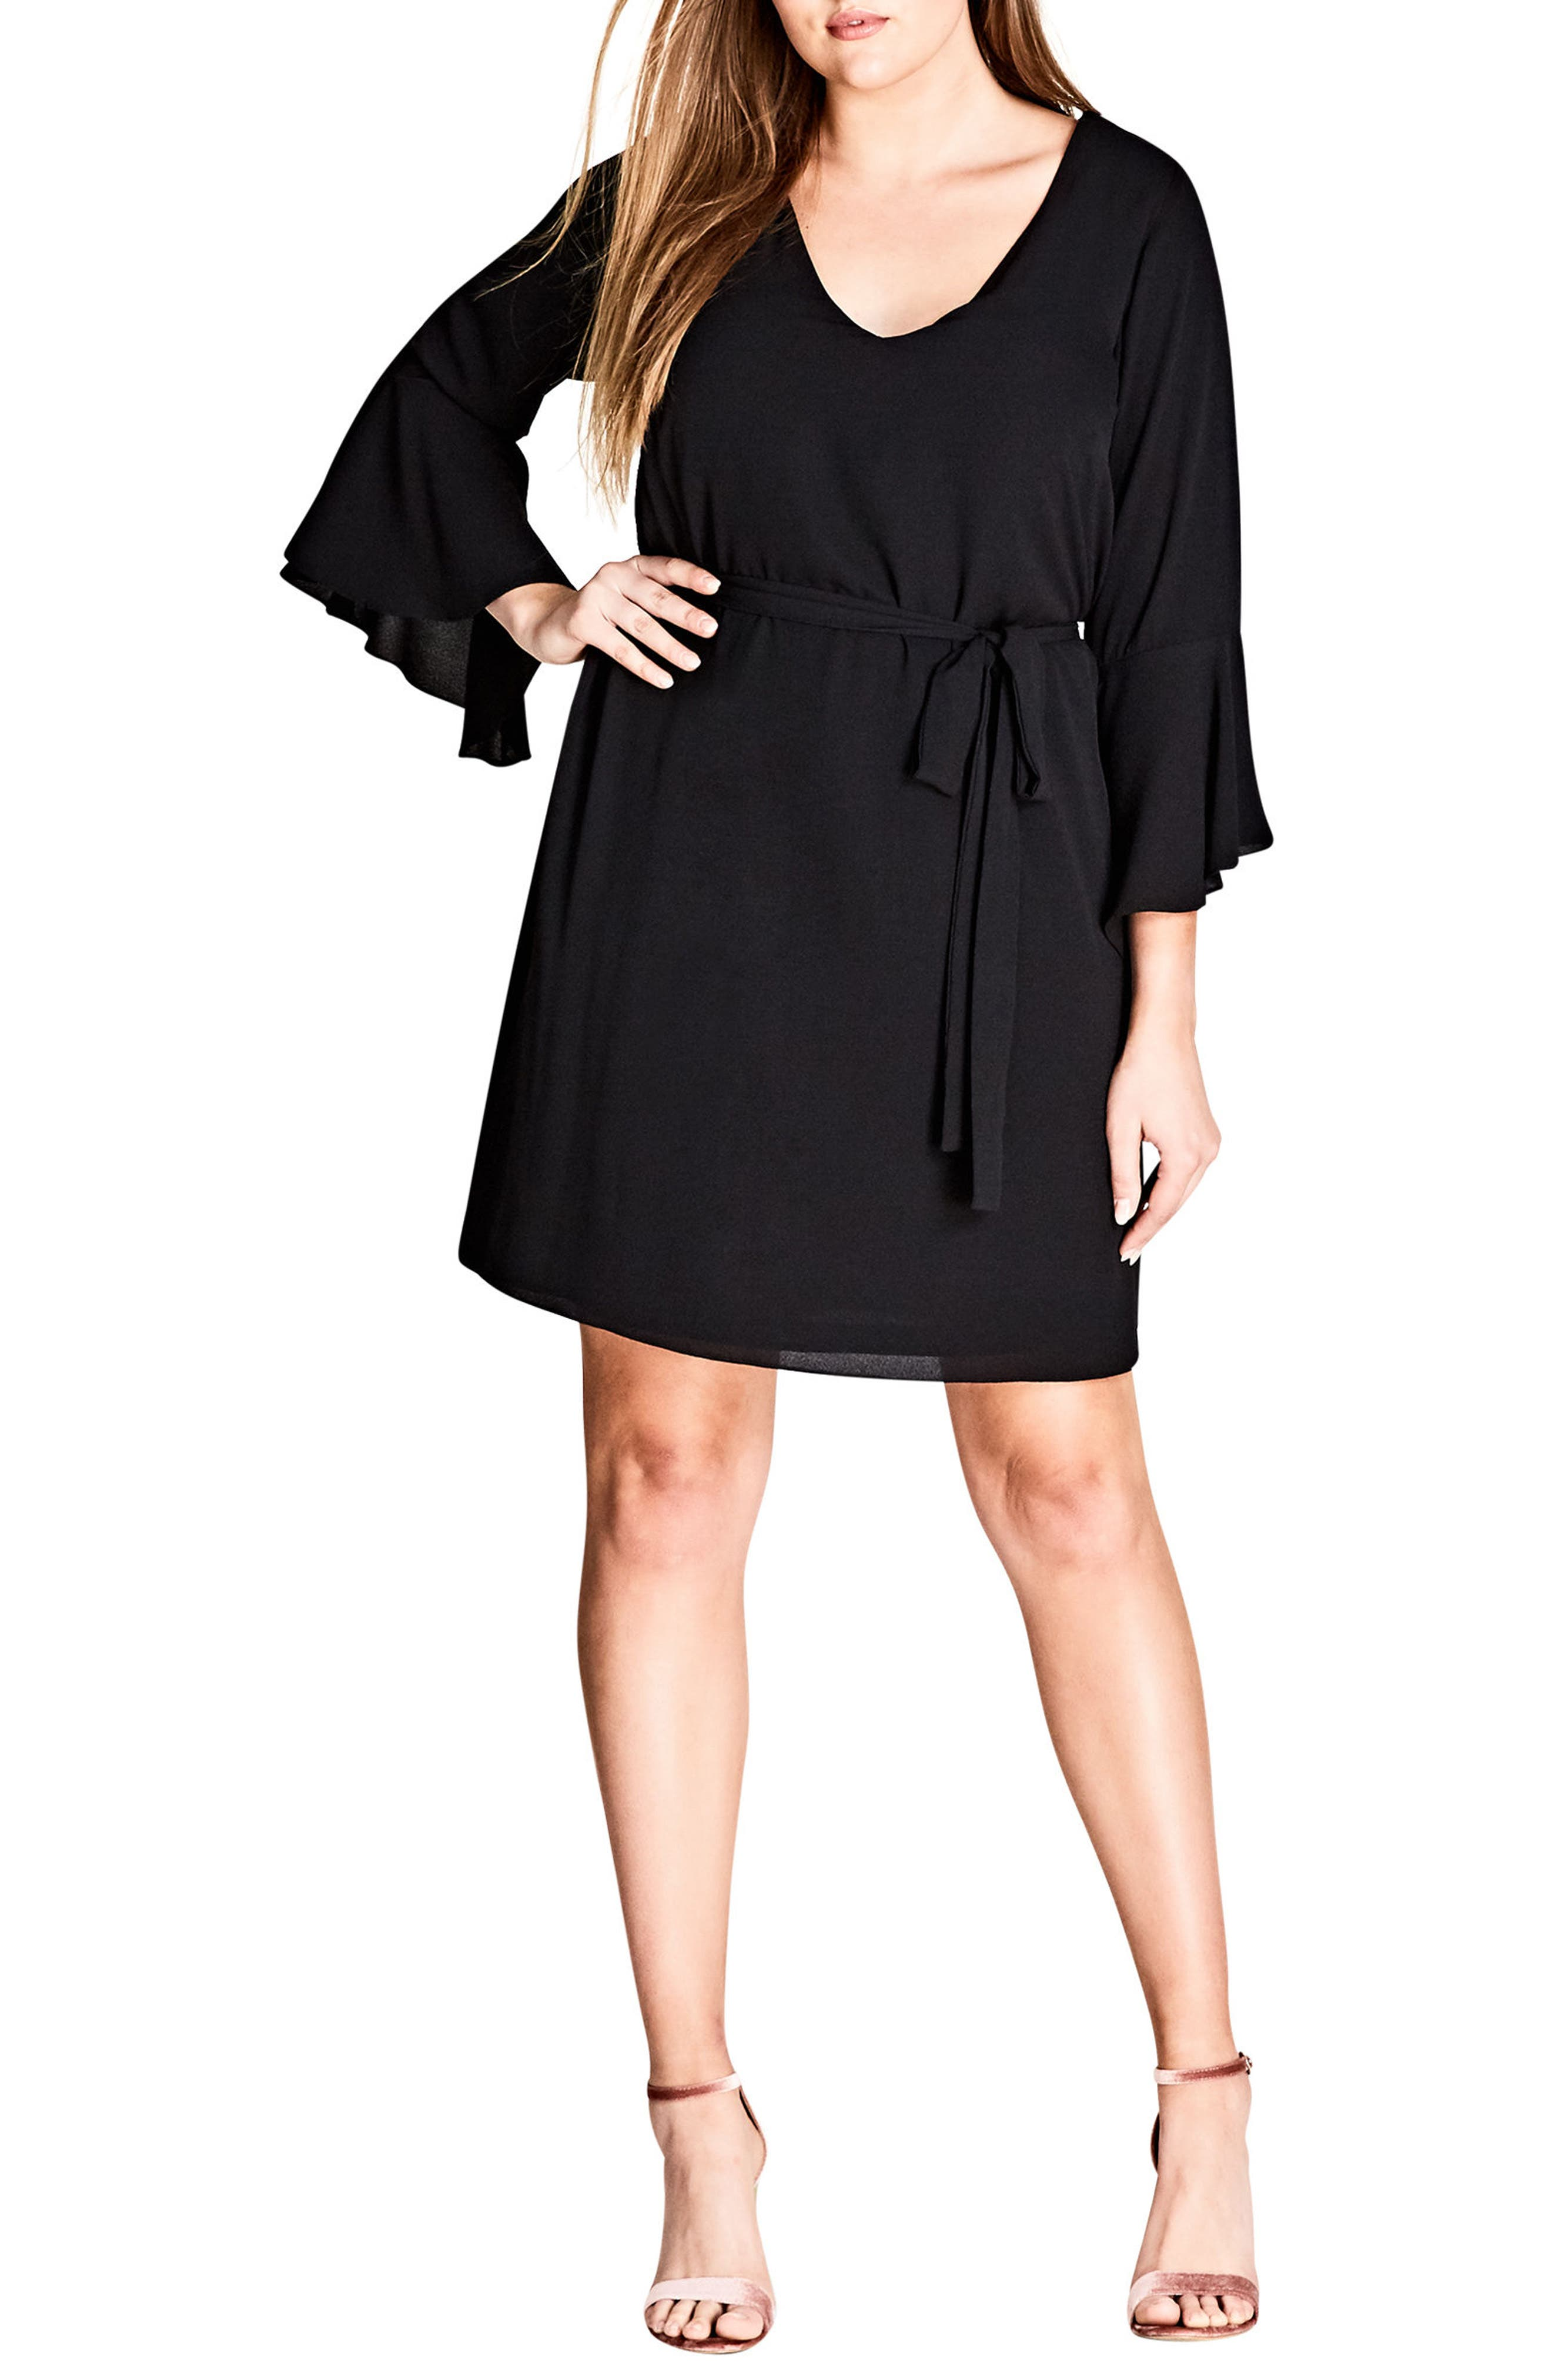 Alternate Image 1 Selected - City Chic Tie Waist Bell Sleeve Dress (Plus Size)